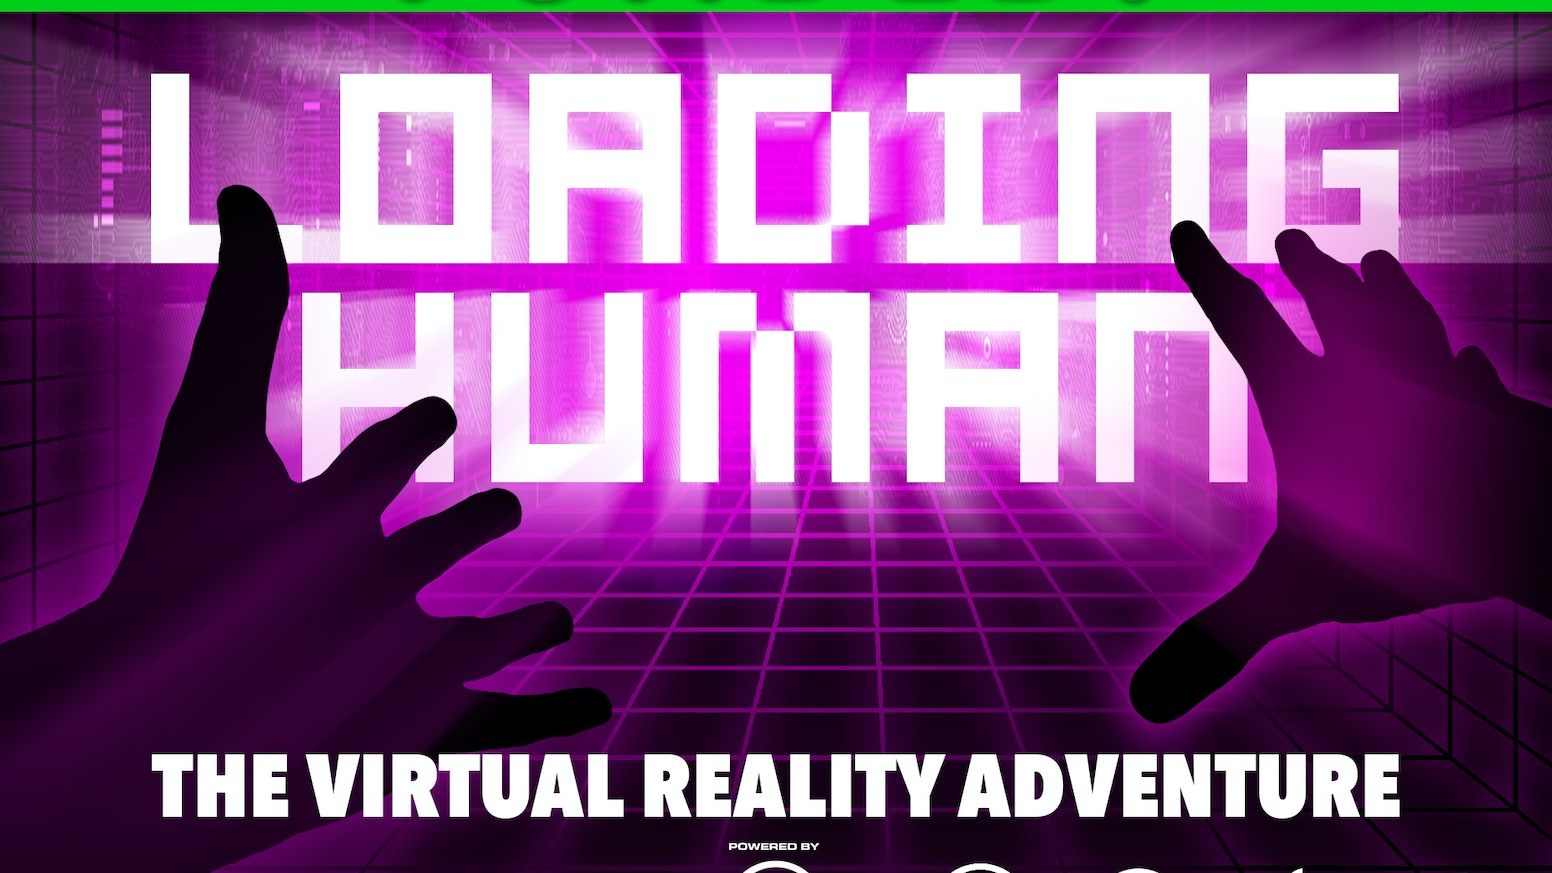 The award-winning Adventure in Virtual Reality for Oculus Rift, powered by groundbreaking controls, set in a thrilling Sci-Fi world.